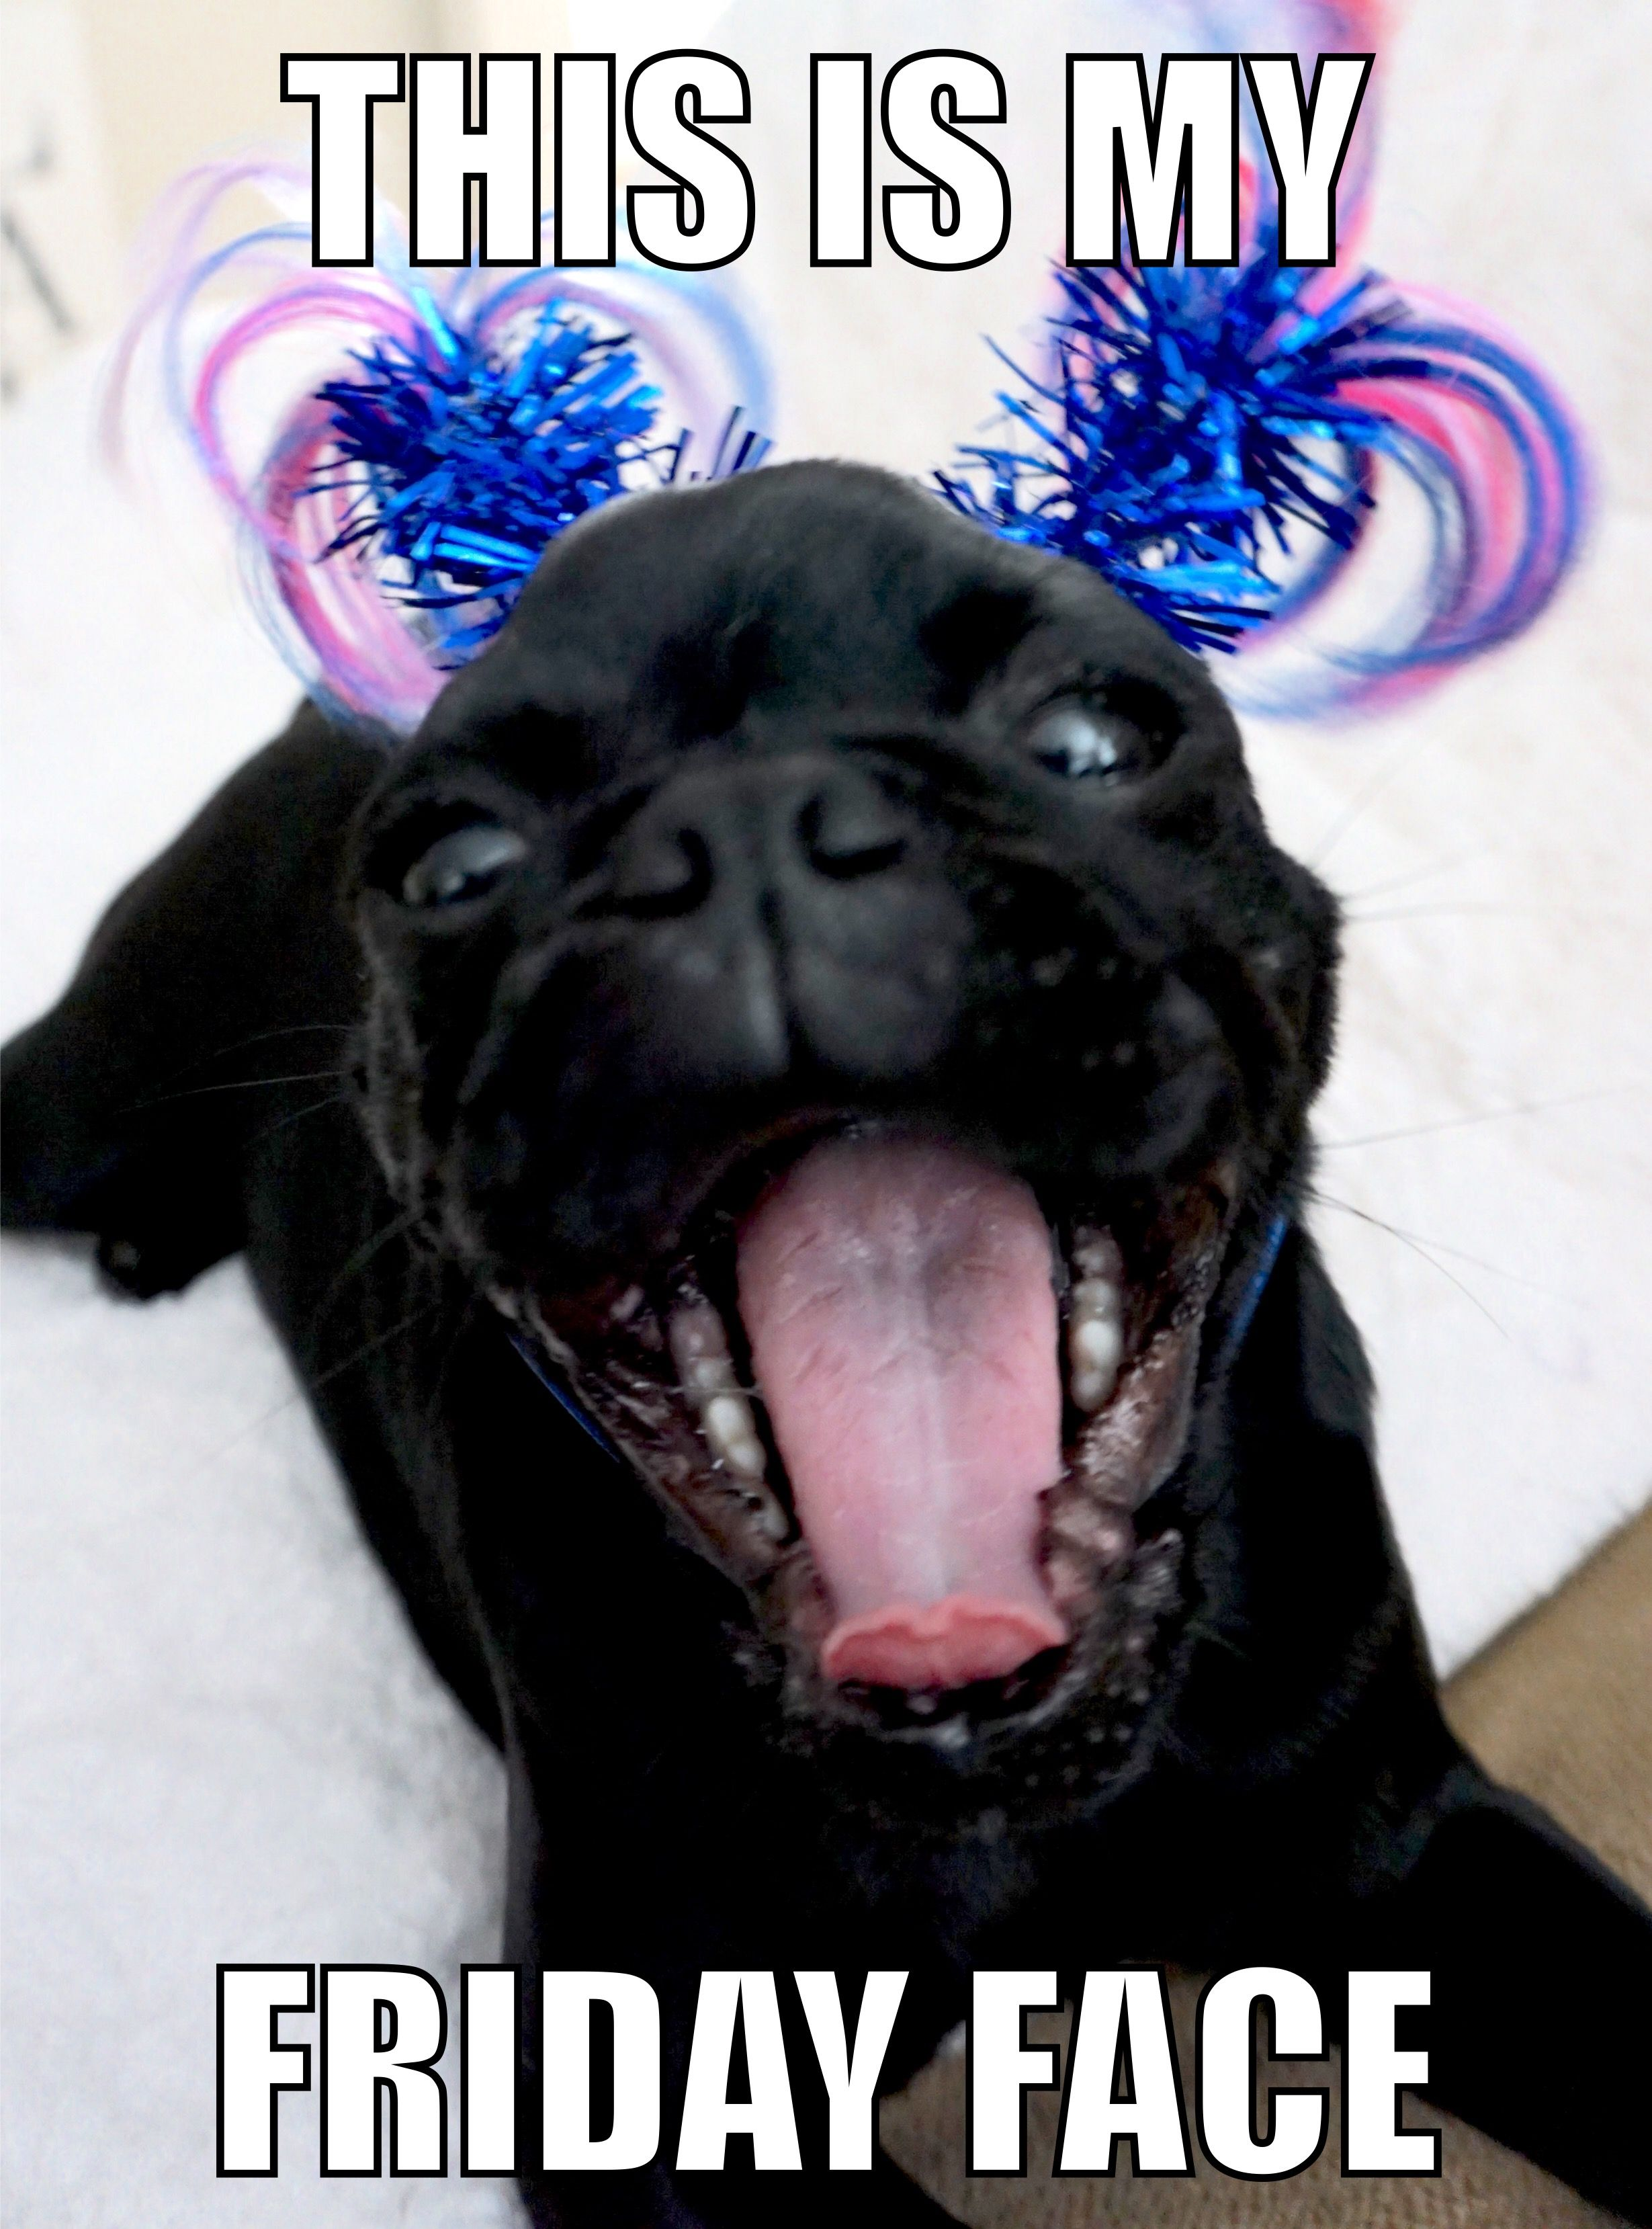 Friday Friday Vibes Funny Pug Funny Meme Pug Meme Friday Feelings Black Pug Fridayvibes Friday Fridayfeeling F Pugs Funny Meme Pug Memes Funny Pug Pictures